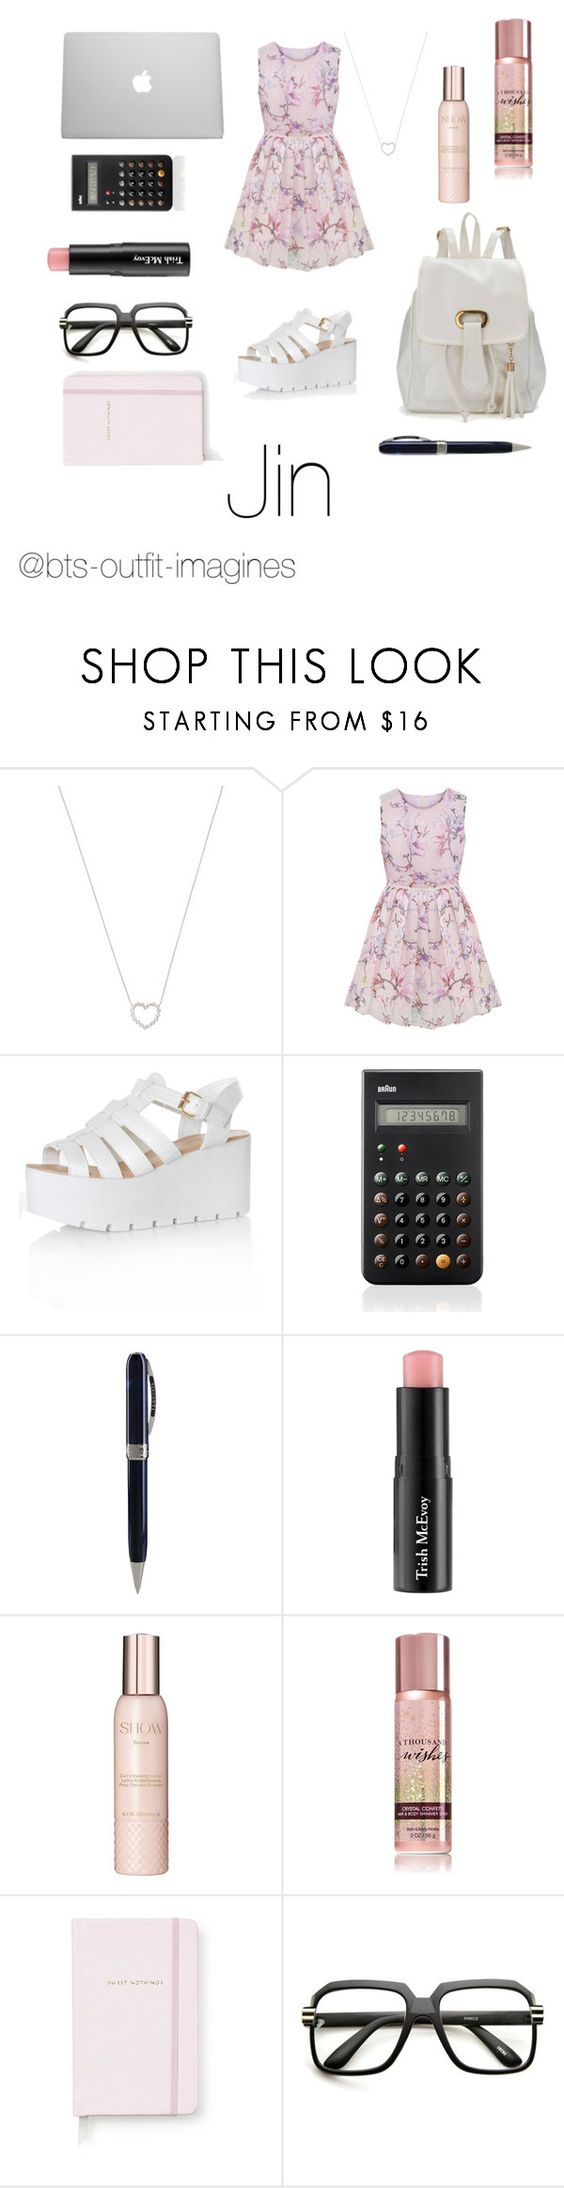 """""""School with Jin"""" by bts-outfit-imagines ❤ liked on Polyvore featuring Tiffany & Co., Glamorous, Braun, Visconti, Trish McEvoy, Show Beauty, Kate Spade, women's clothing, women and female"""